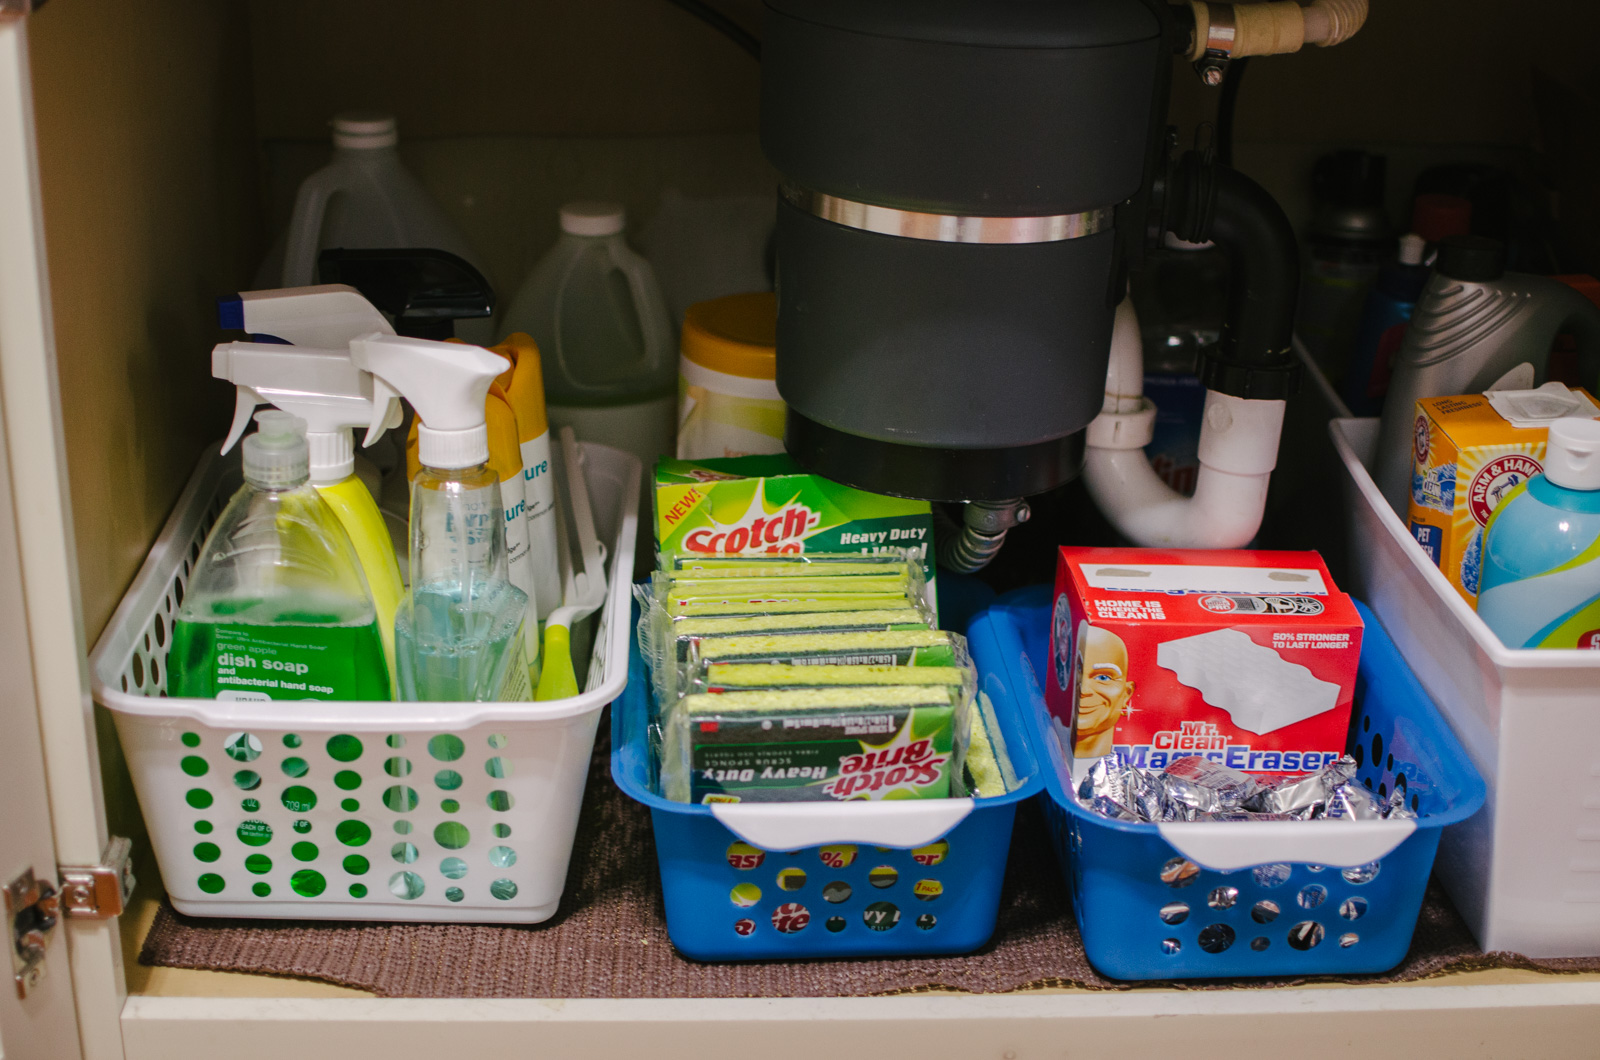 kitchen organization diy dollar store - easy $5 diy organization! You're going to love this kitchen organization before and after! Spend $5 and completely revamp your under sink cabinets! | bylaurenm.com